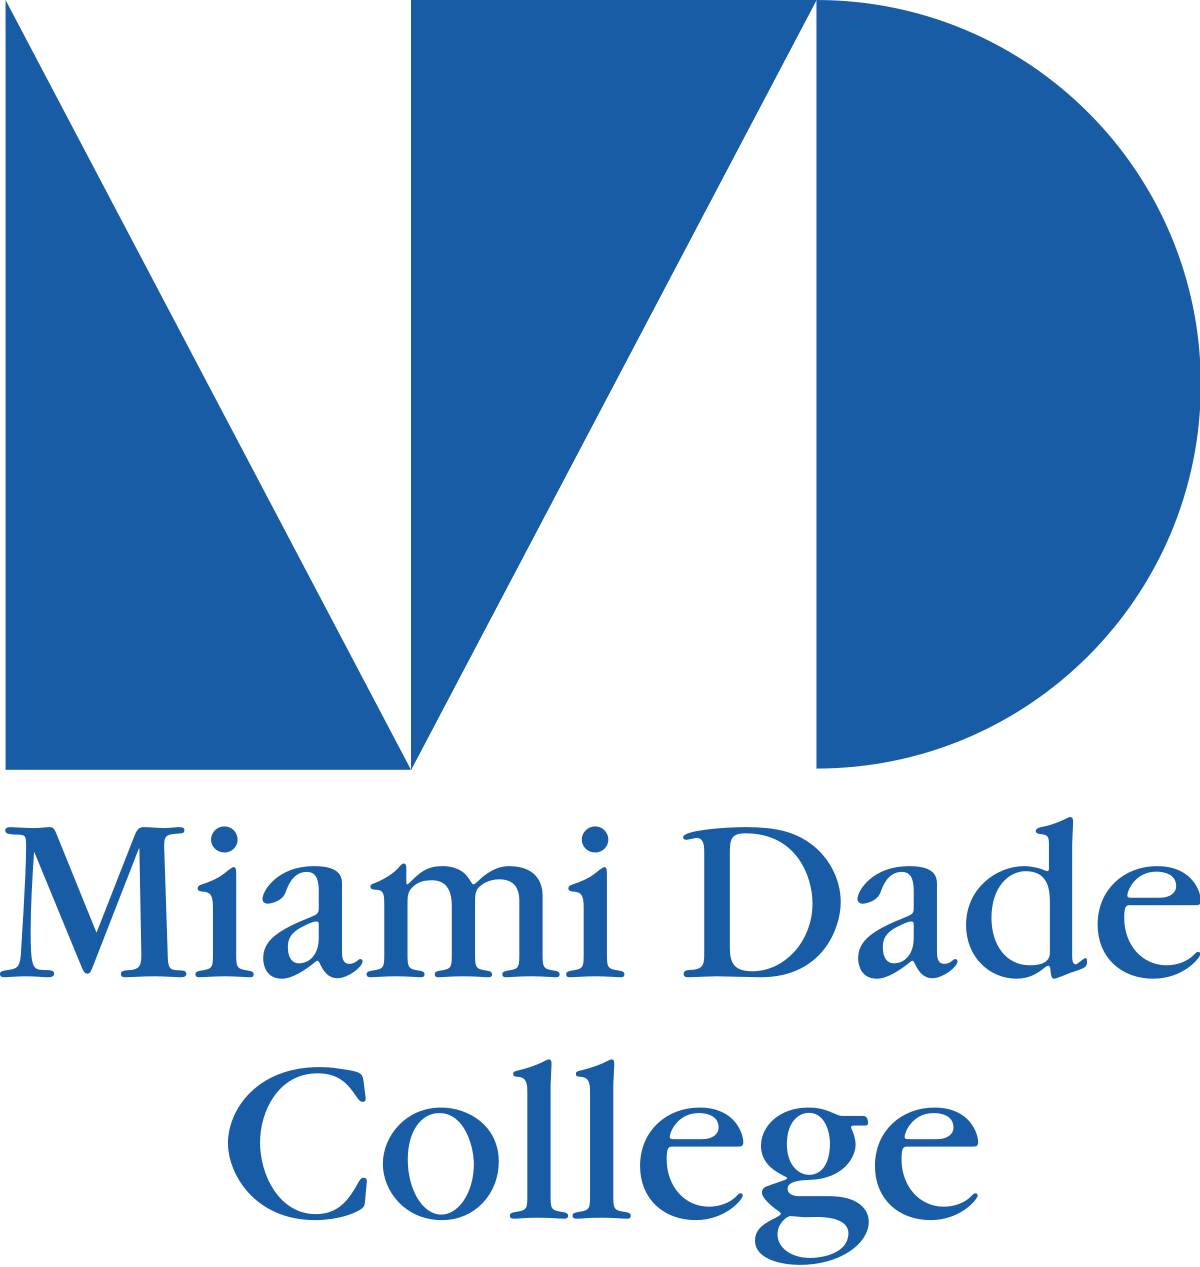 Miami dade college online